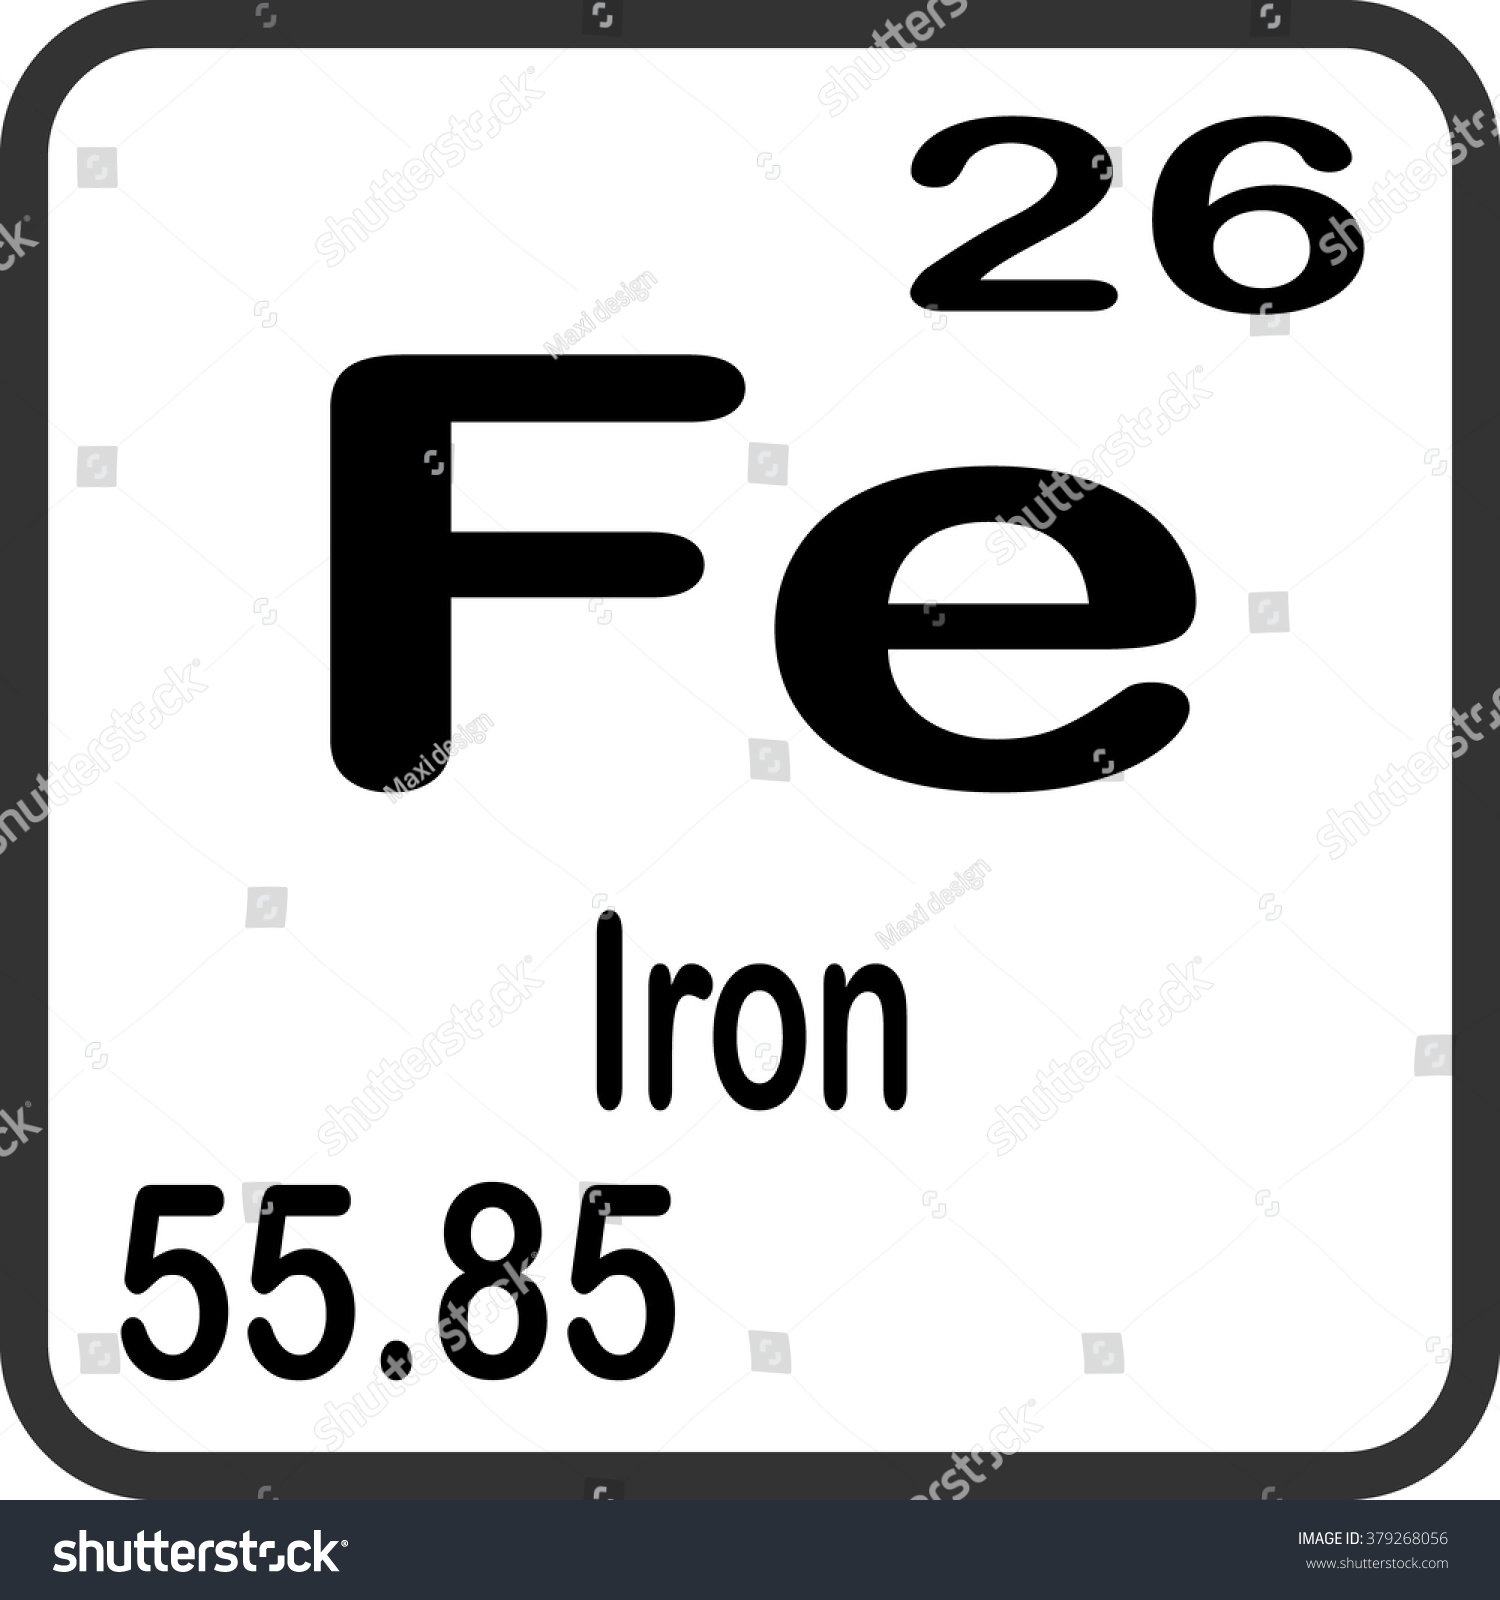 Periodic table elements iron stock vector 379268056 shutterstock periodic table of elements iron gamestrikefo Image collections